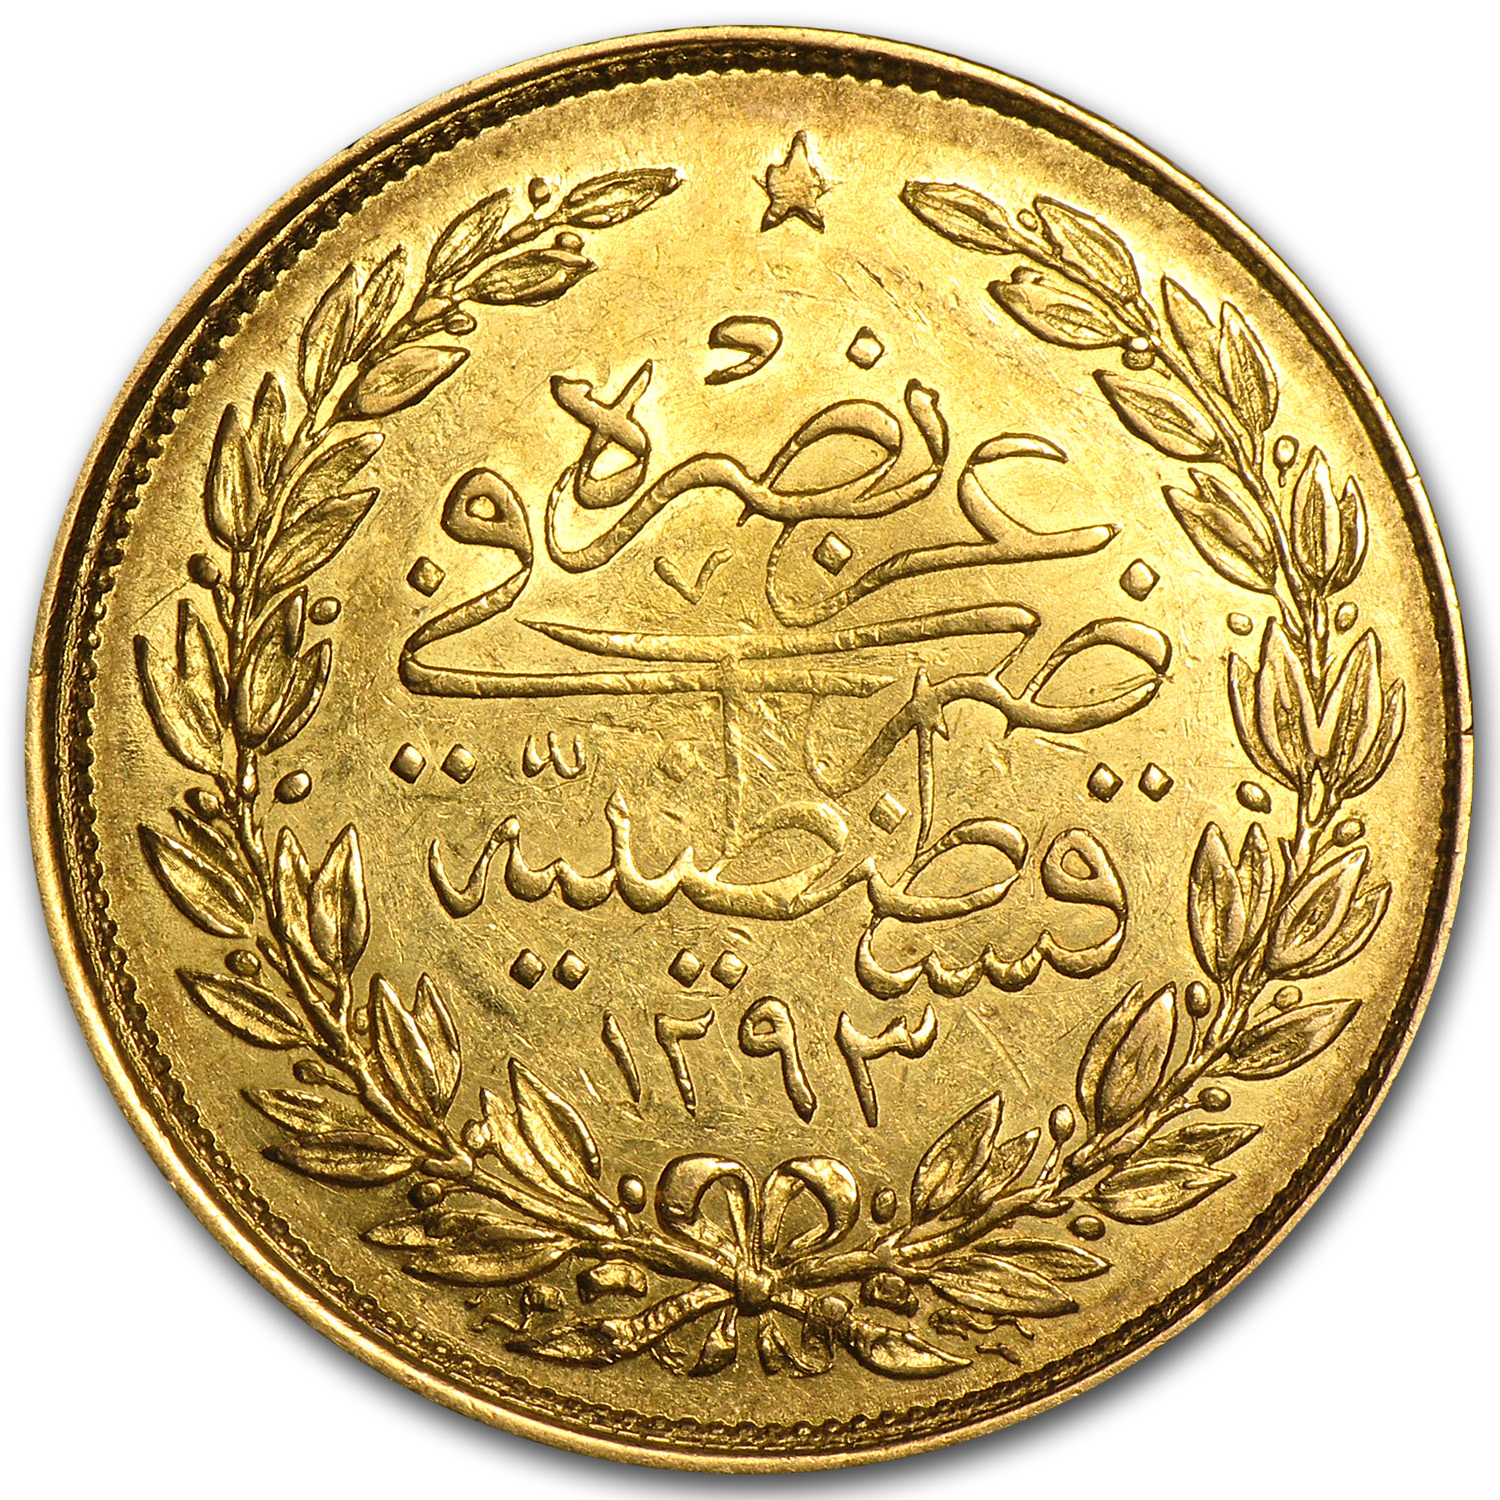 Ottoman (Turkish) 100 Kurush Gold (Avg Circ) Random Dates